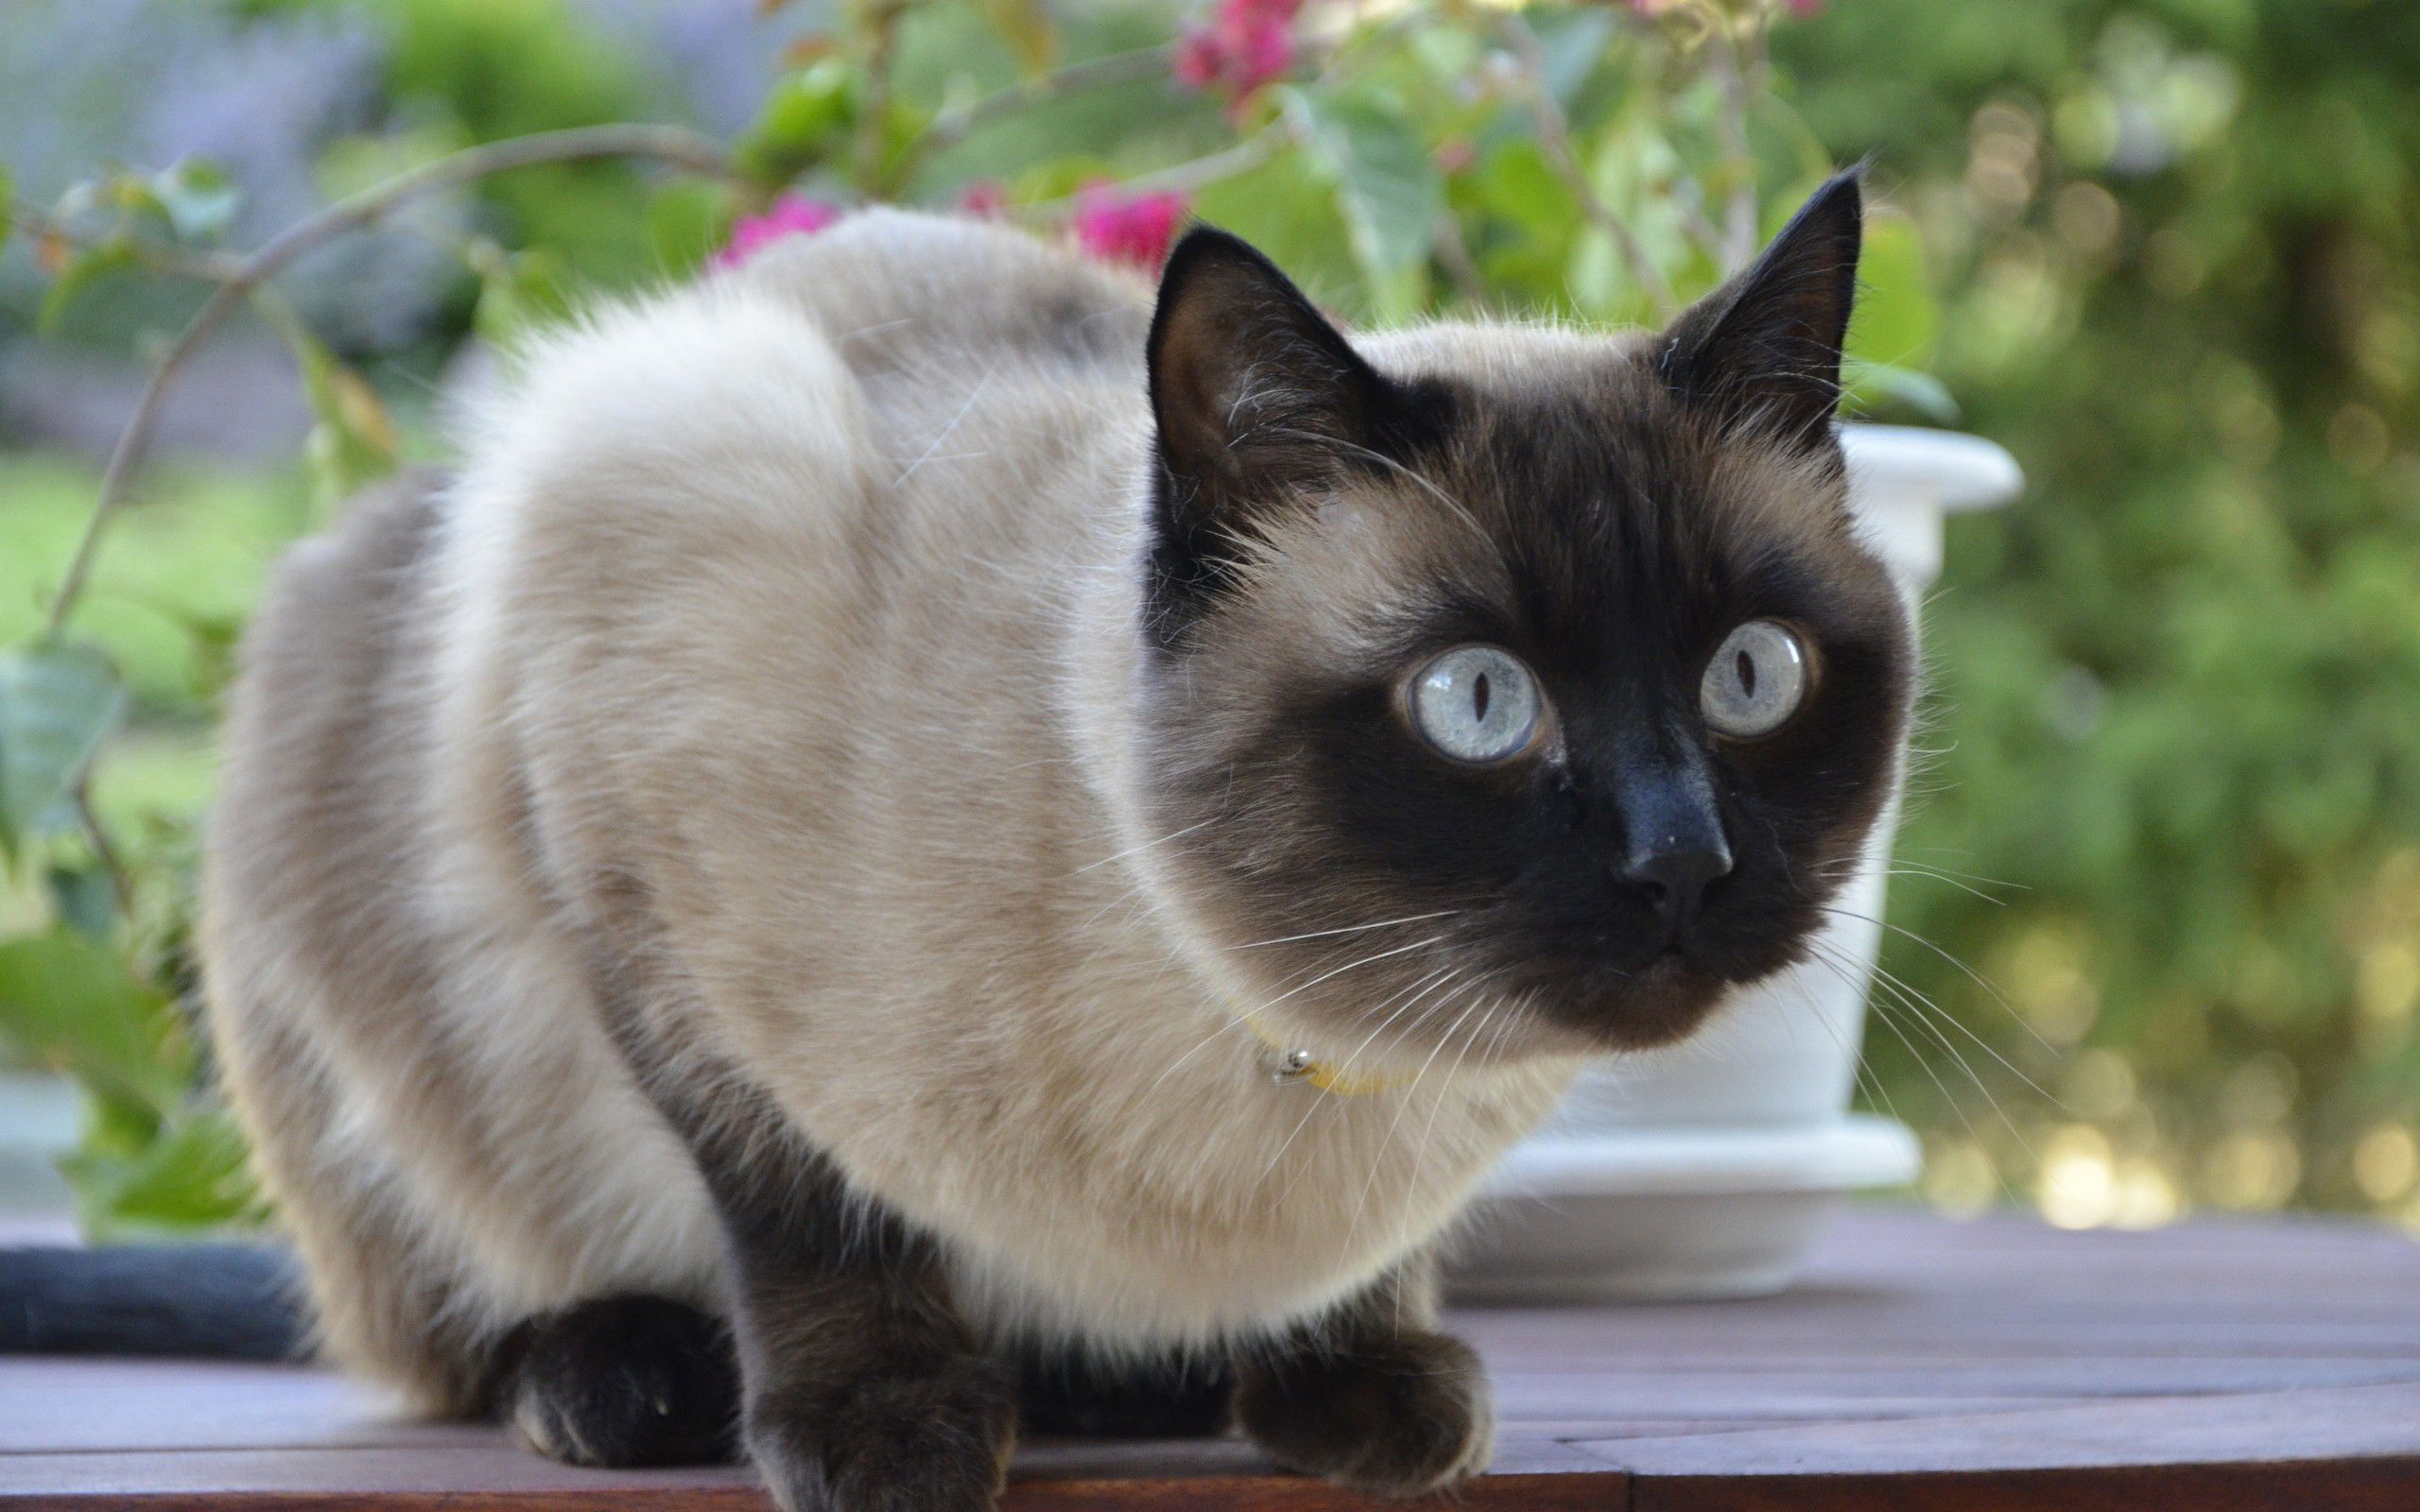 Afunnyimages provides High Definition Siamese Cat Images